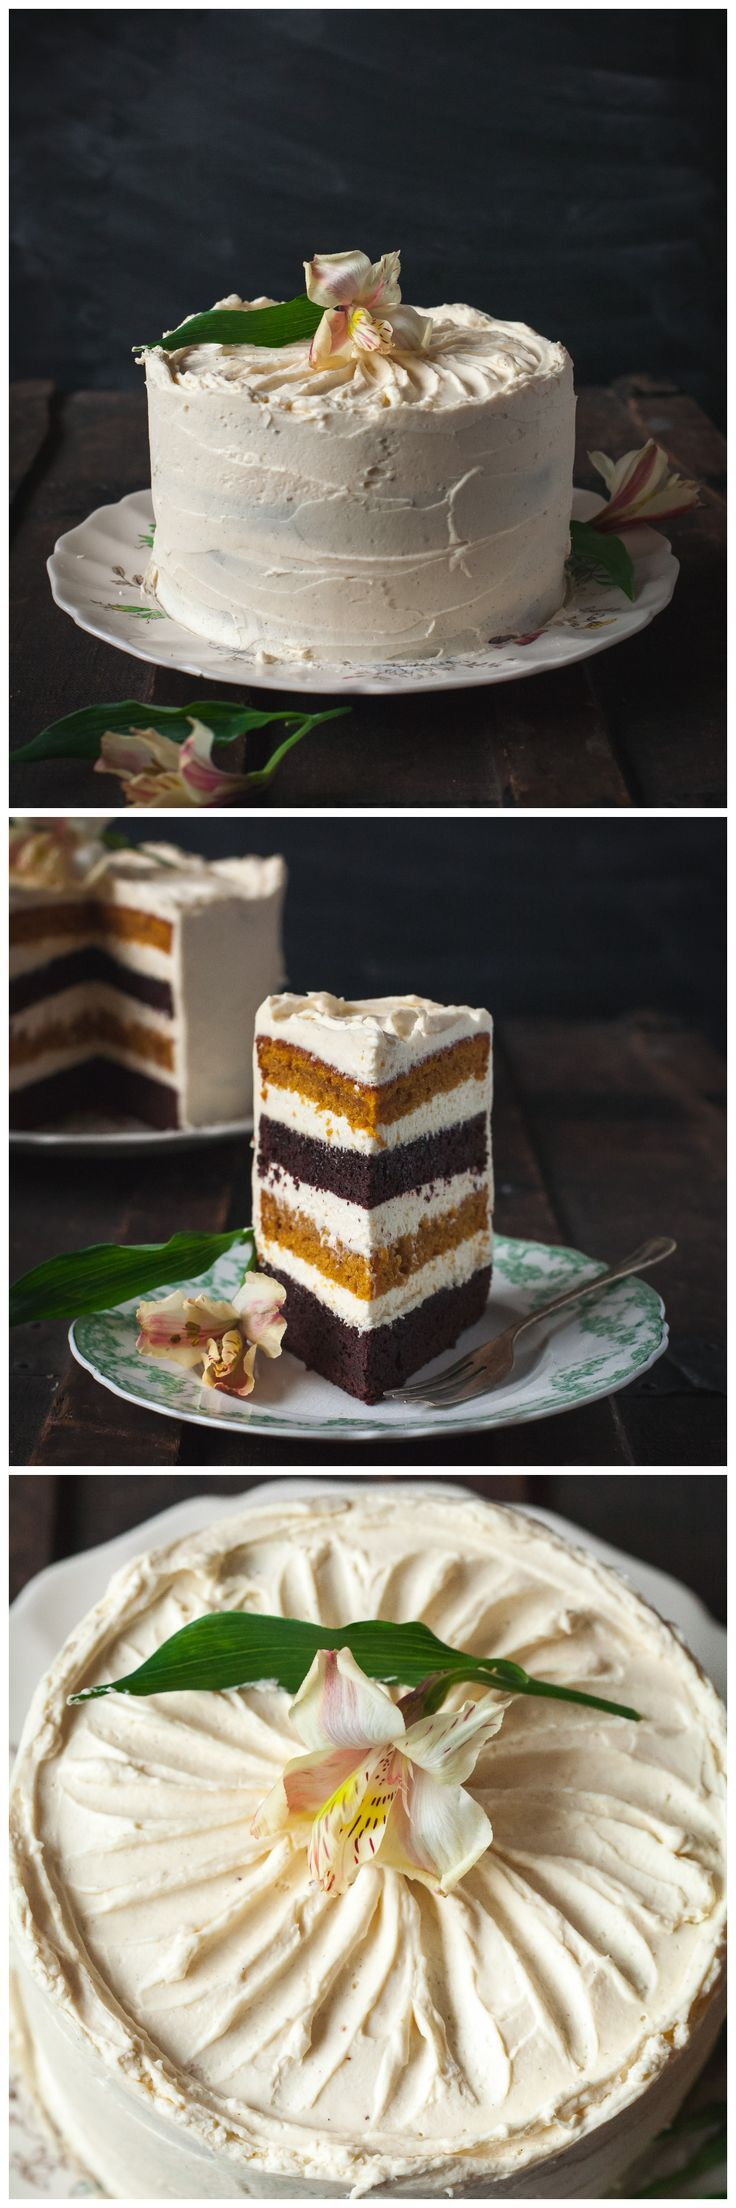 Chocolate and pumpkin layers filled with maple cinnamon mascarpone-this cake will be the most beautiful finish to your holiday feast!